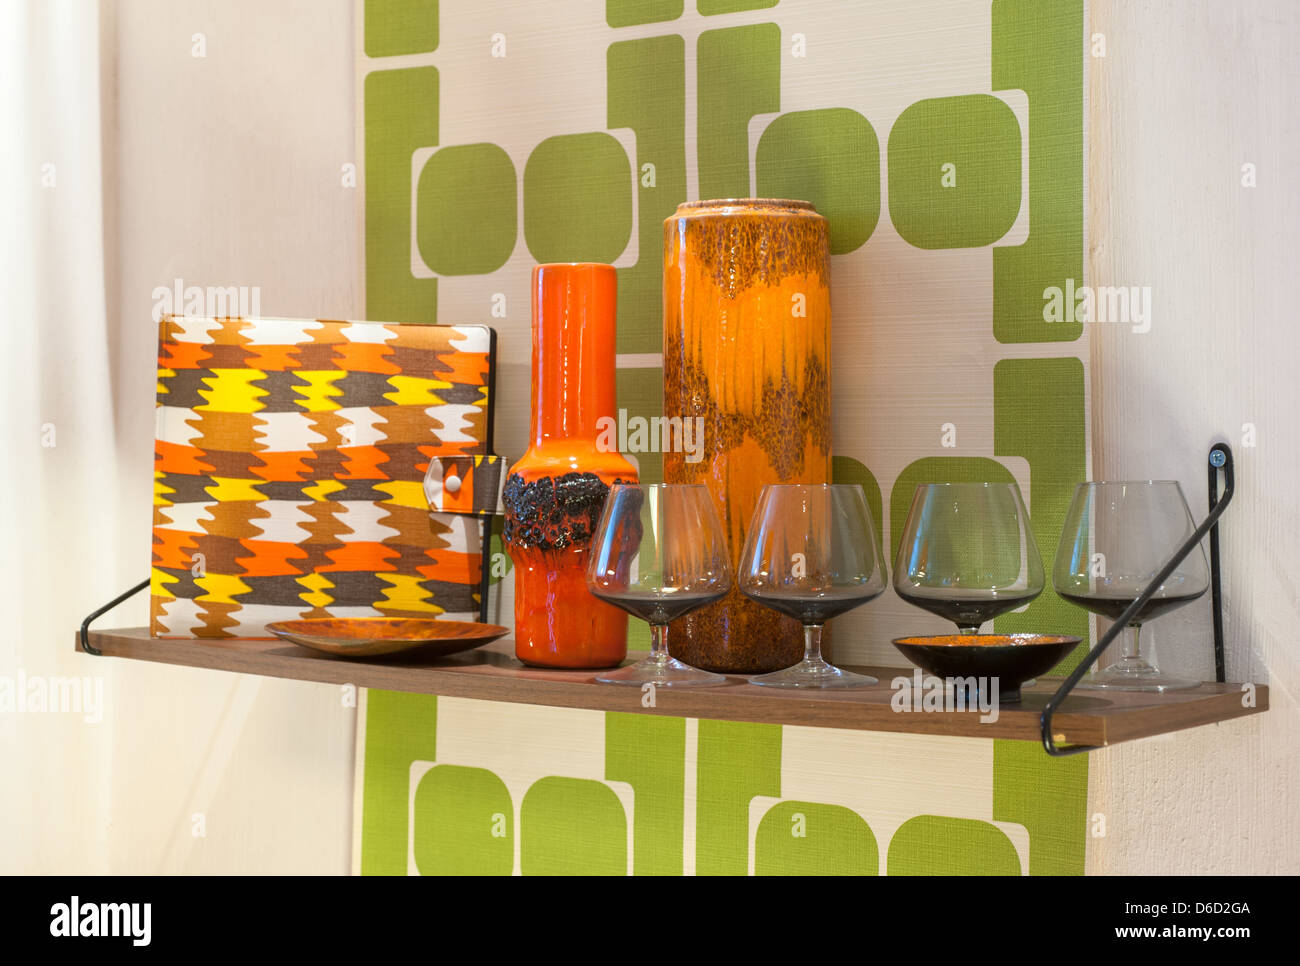 60s stockfotos 60s bilder alamy. Black Bedroom Furniture Sets. Home Design Ideas